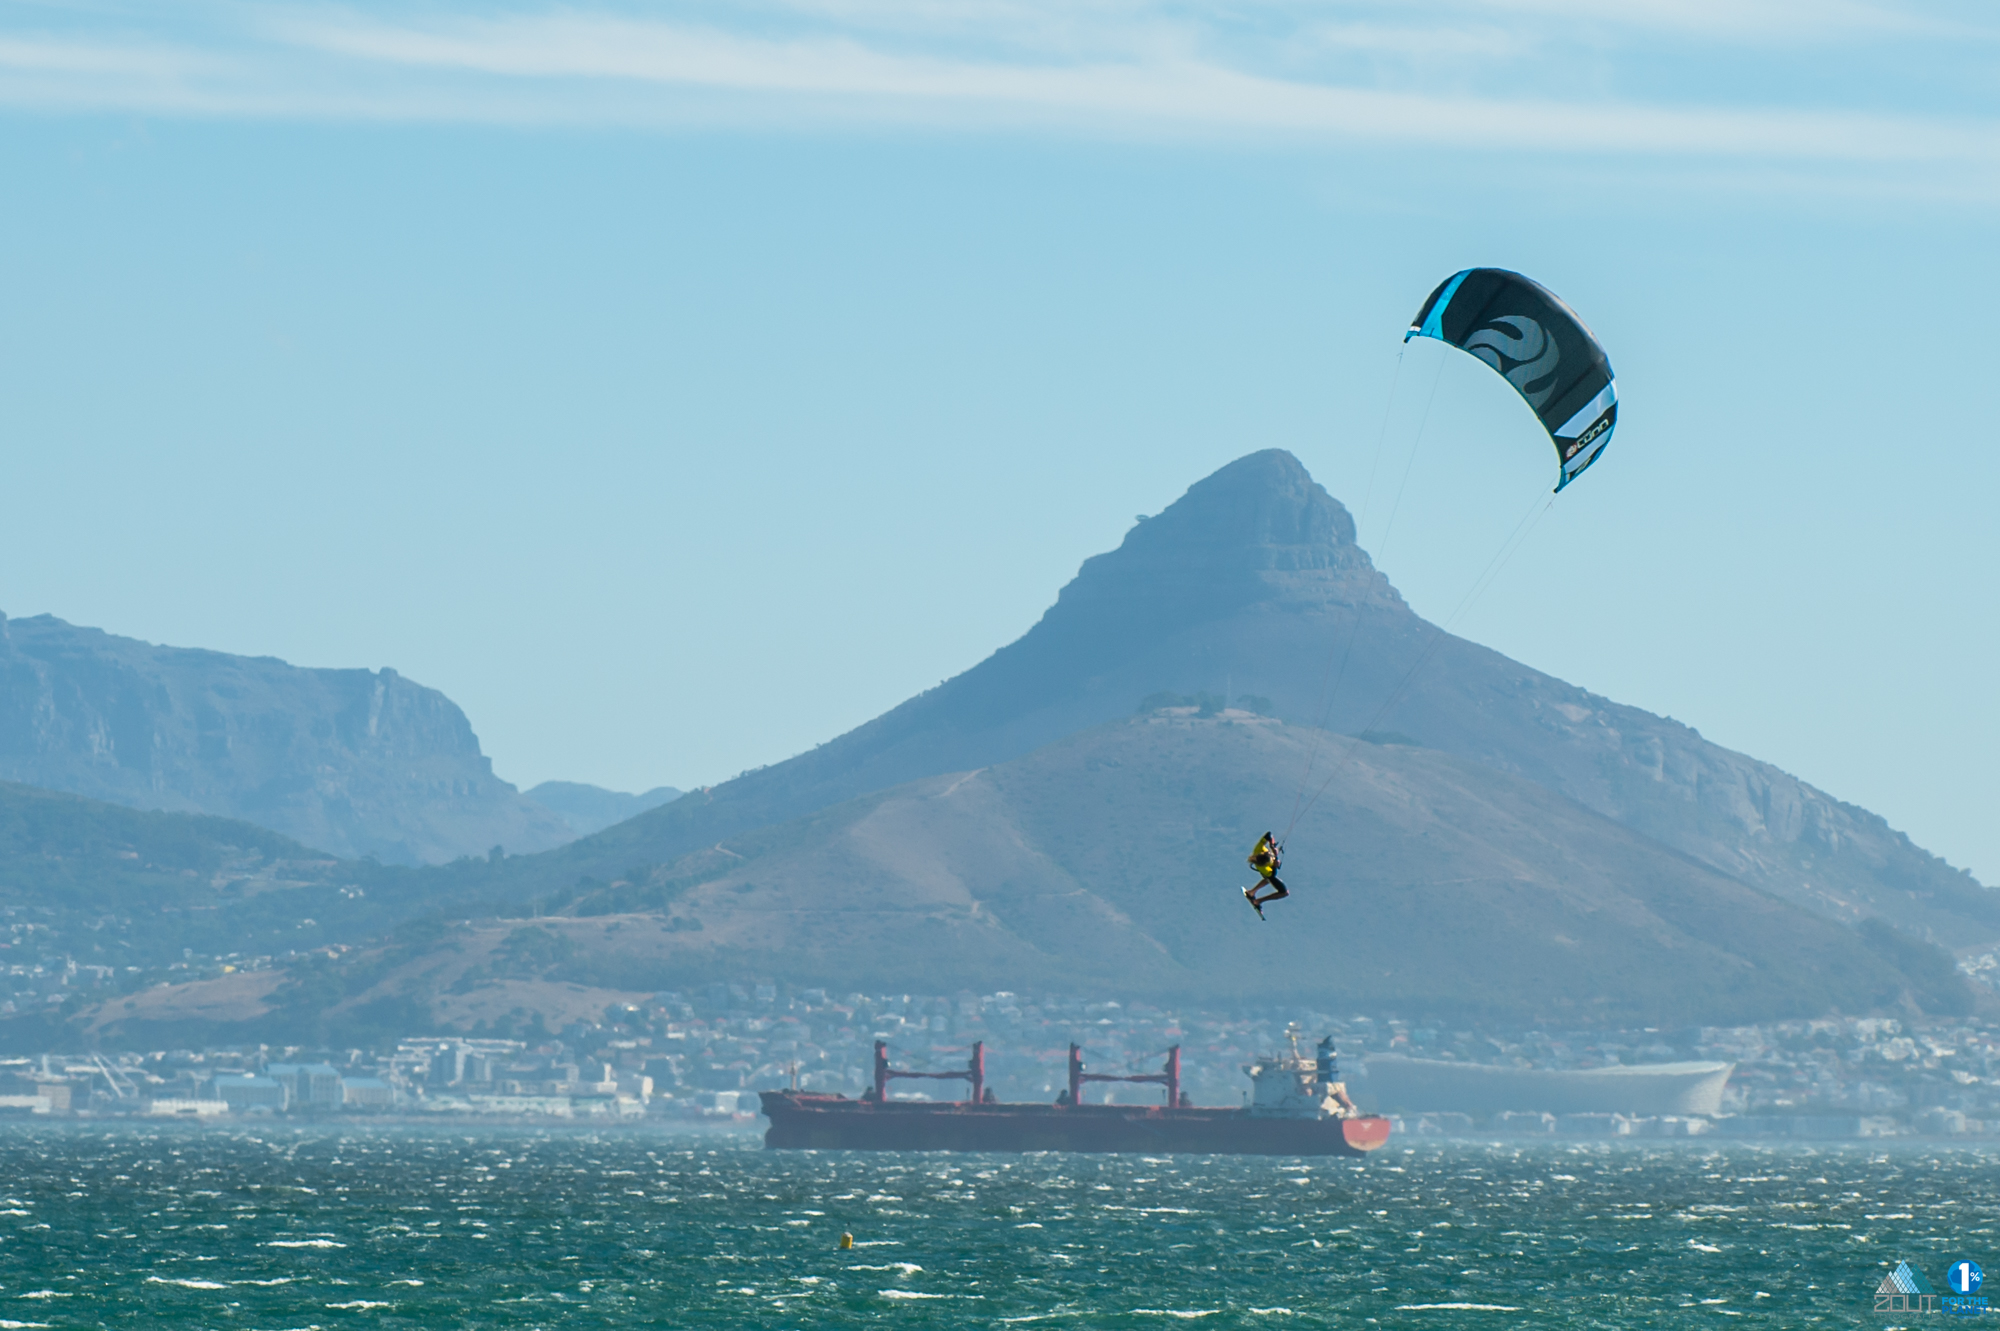 Redbull King of the Air kitesurfing Cape Town